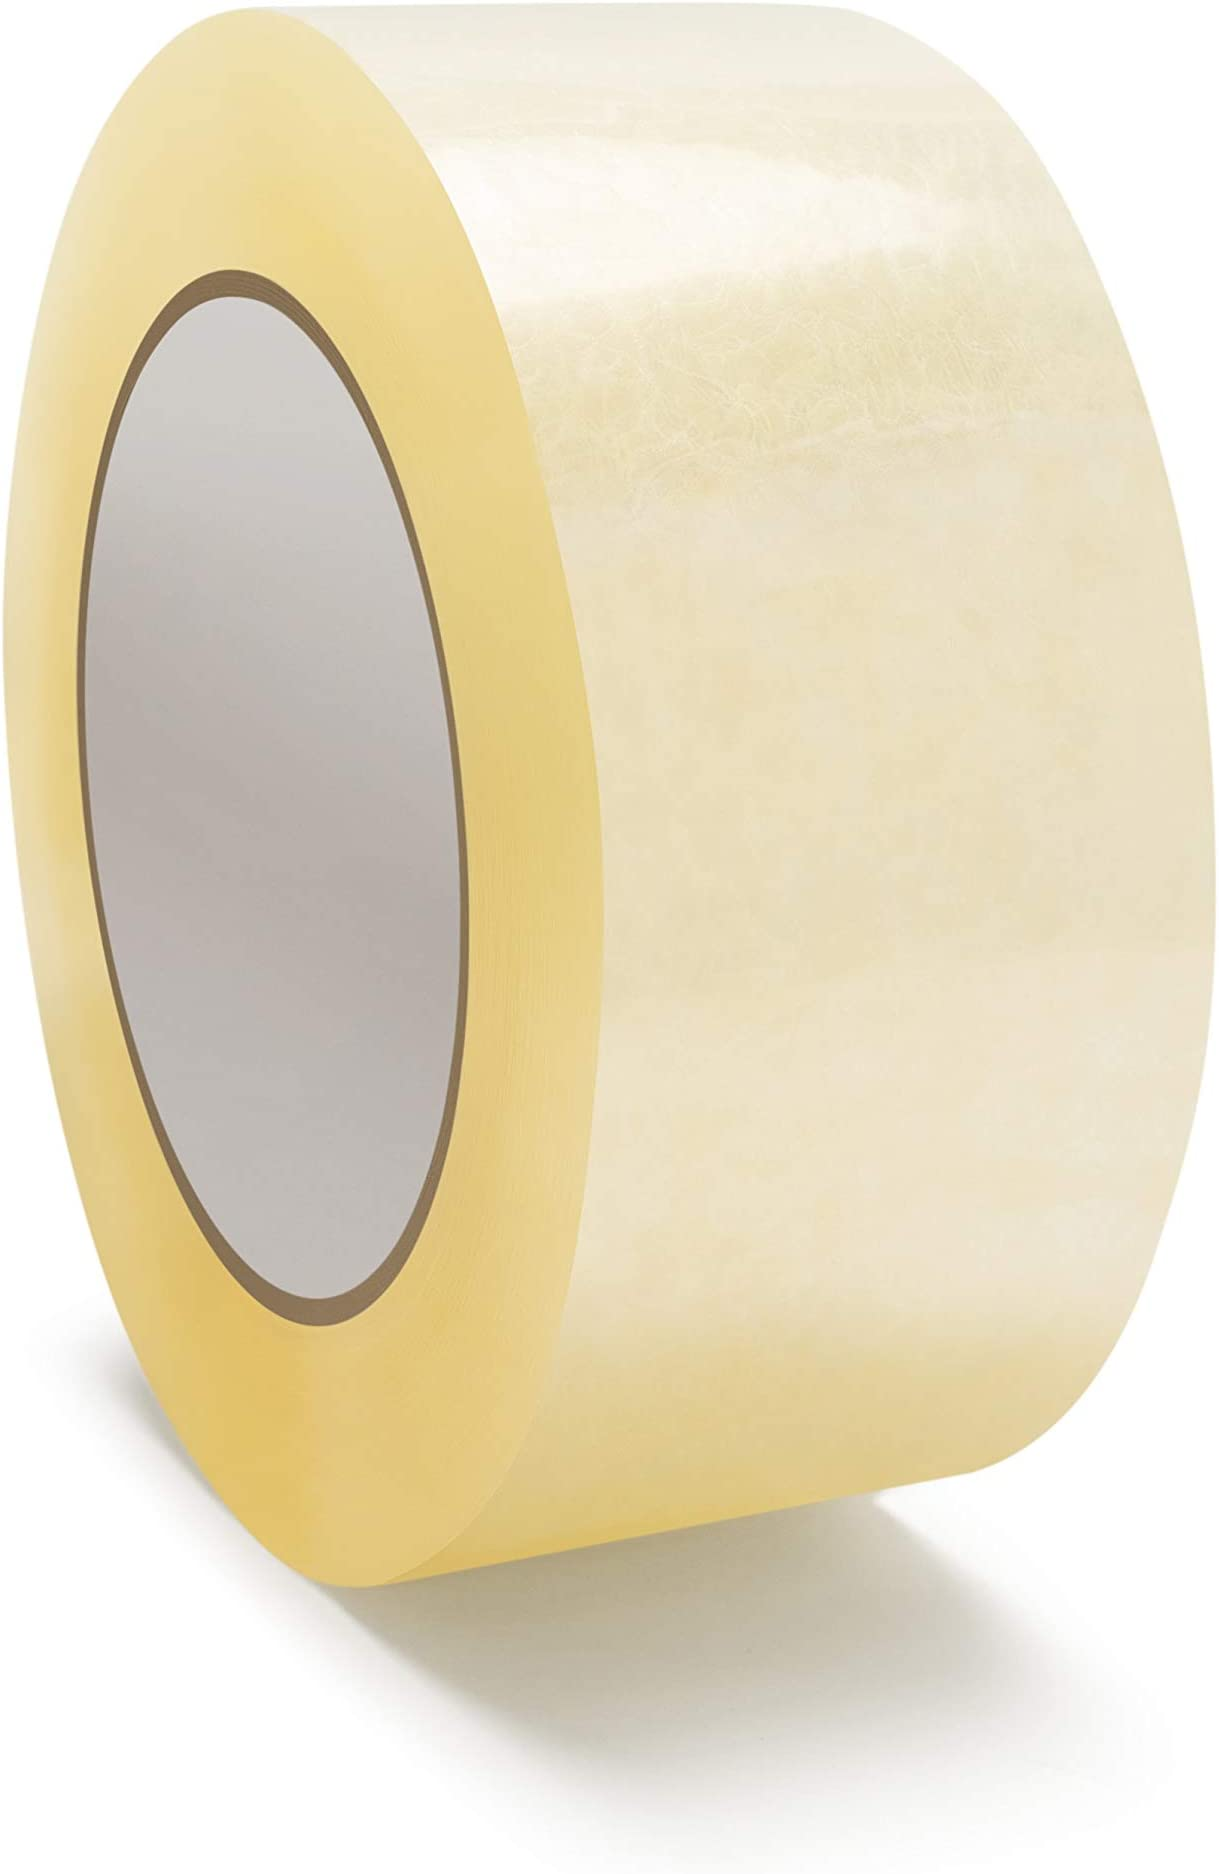 6 ROLLS EXTRA STRONG BIG TAPE BROWN HOT MELT ADHESIVE 48MM X 150M